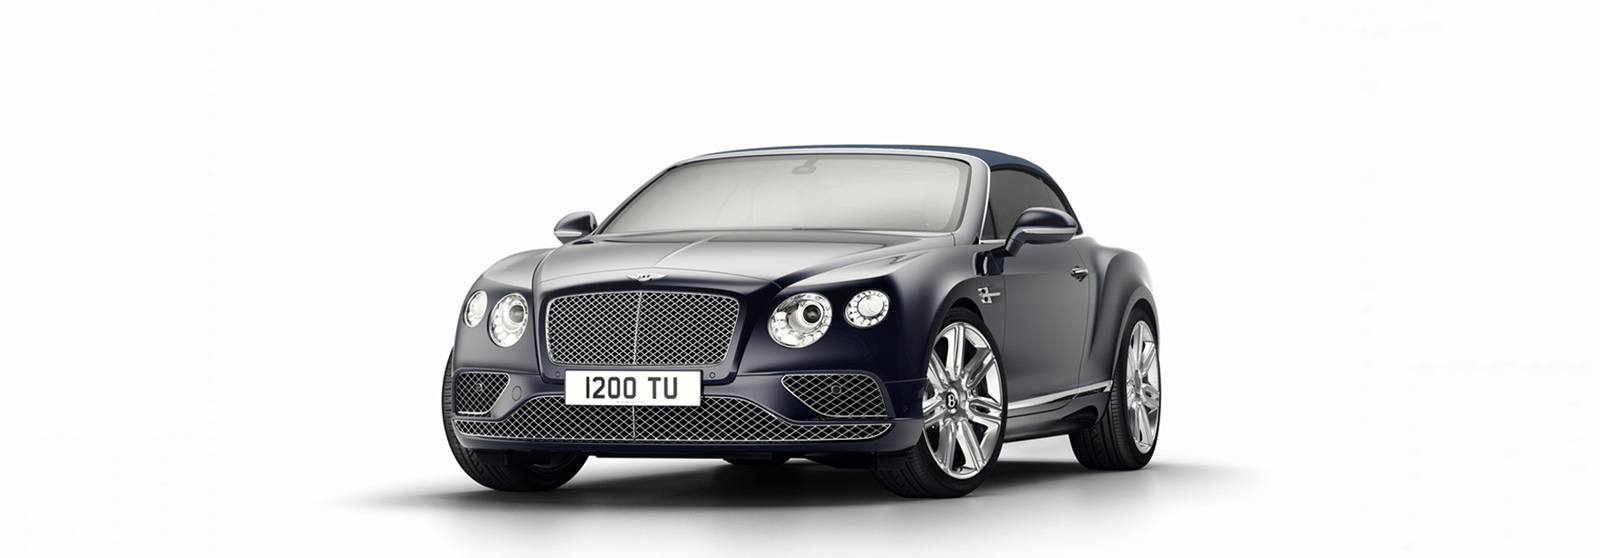 Bentley_Continental_GTC_Timeless_Series_04